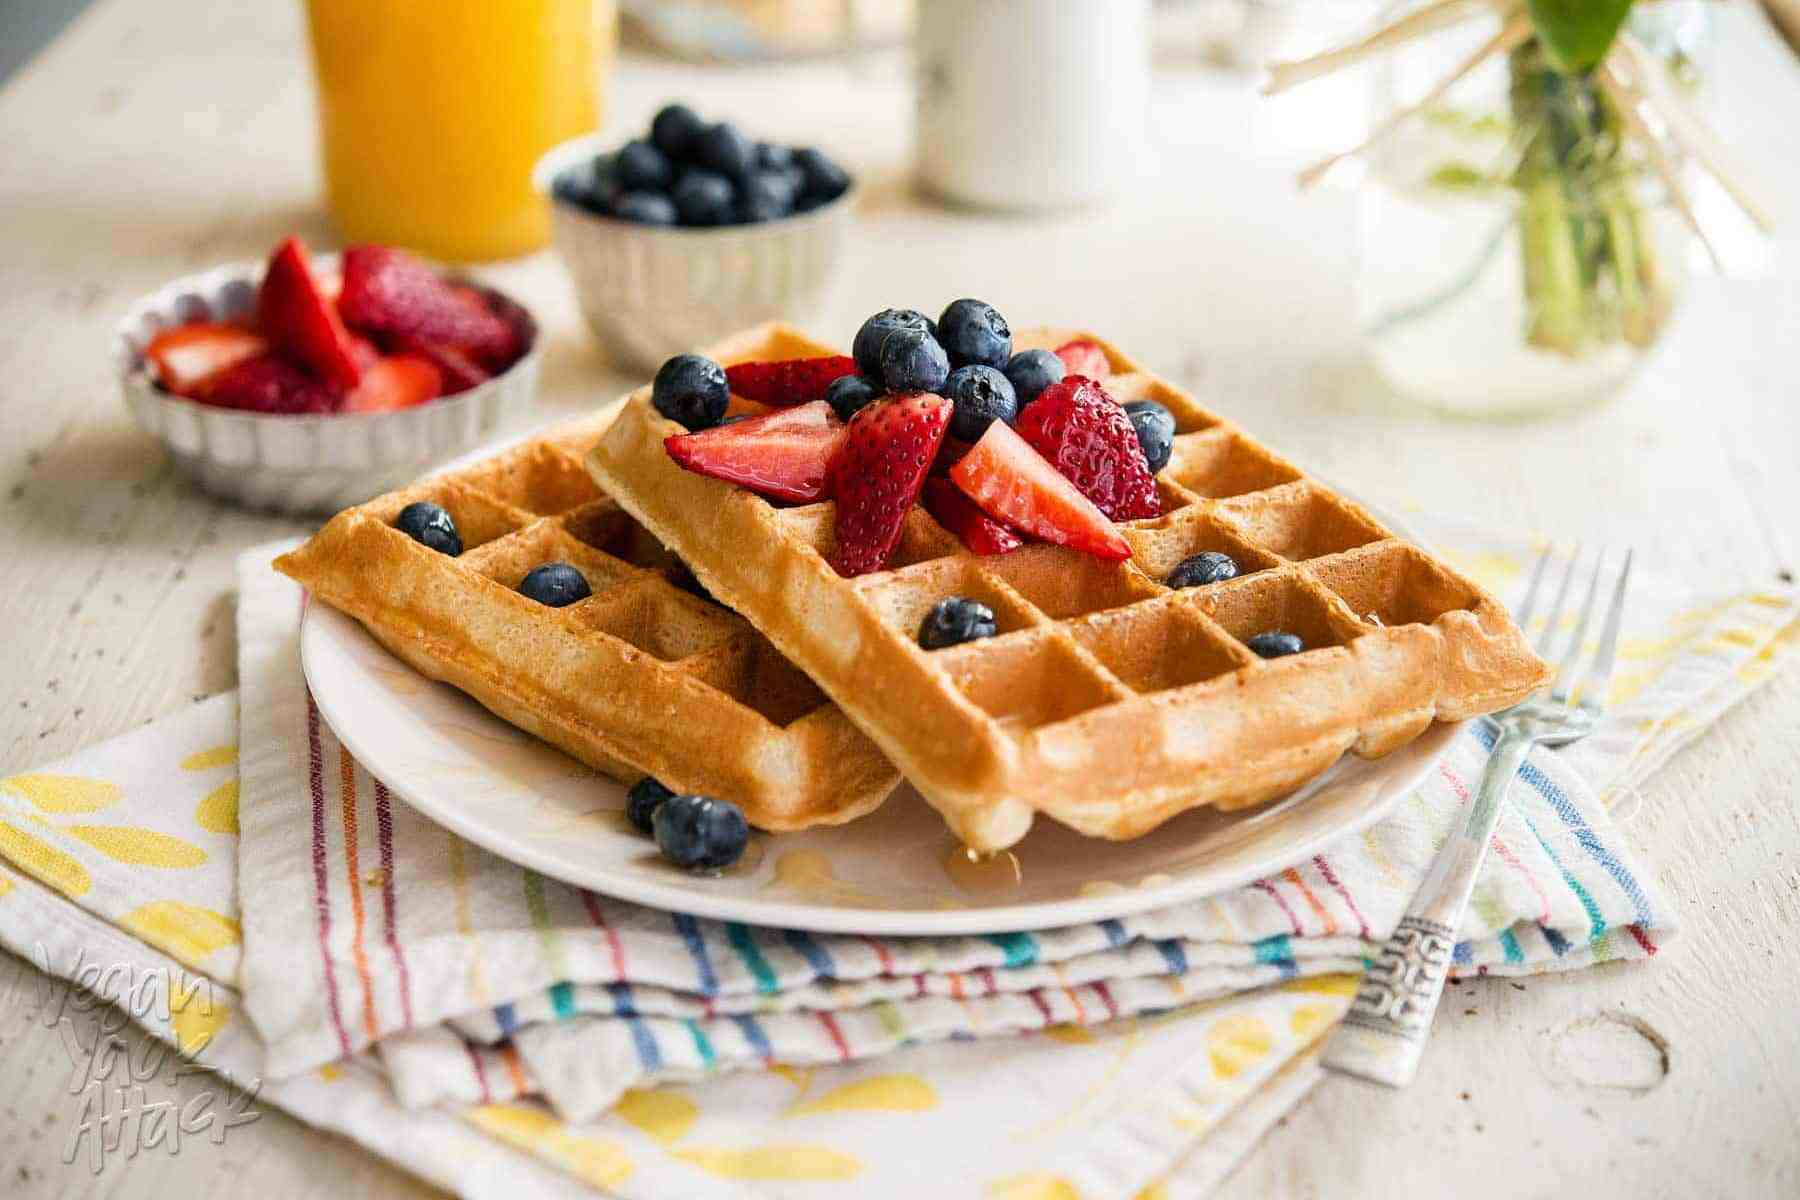 These Berry Pineapple Belgian Waffles are subtly tropical and topped with fresh berries, plus they come together in minutes!